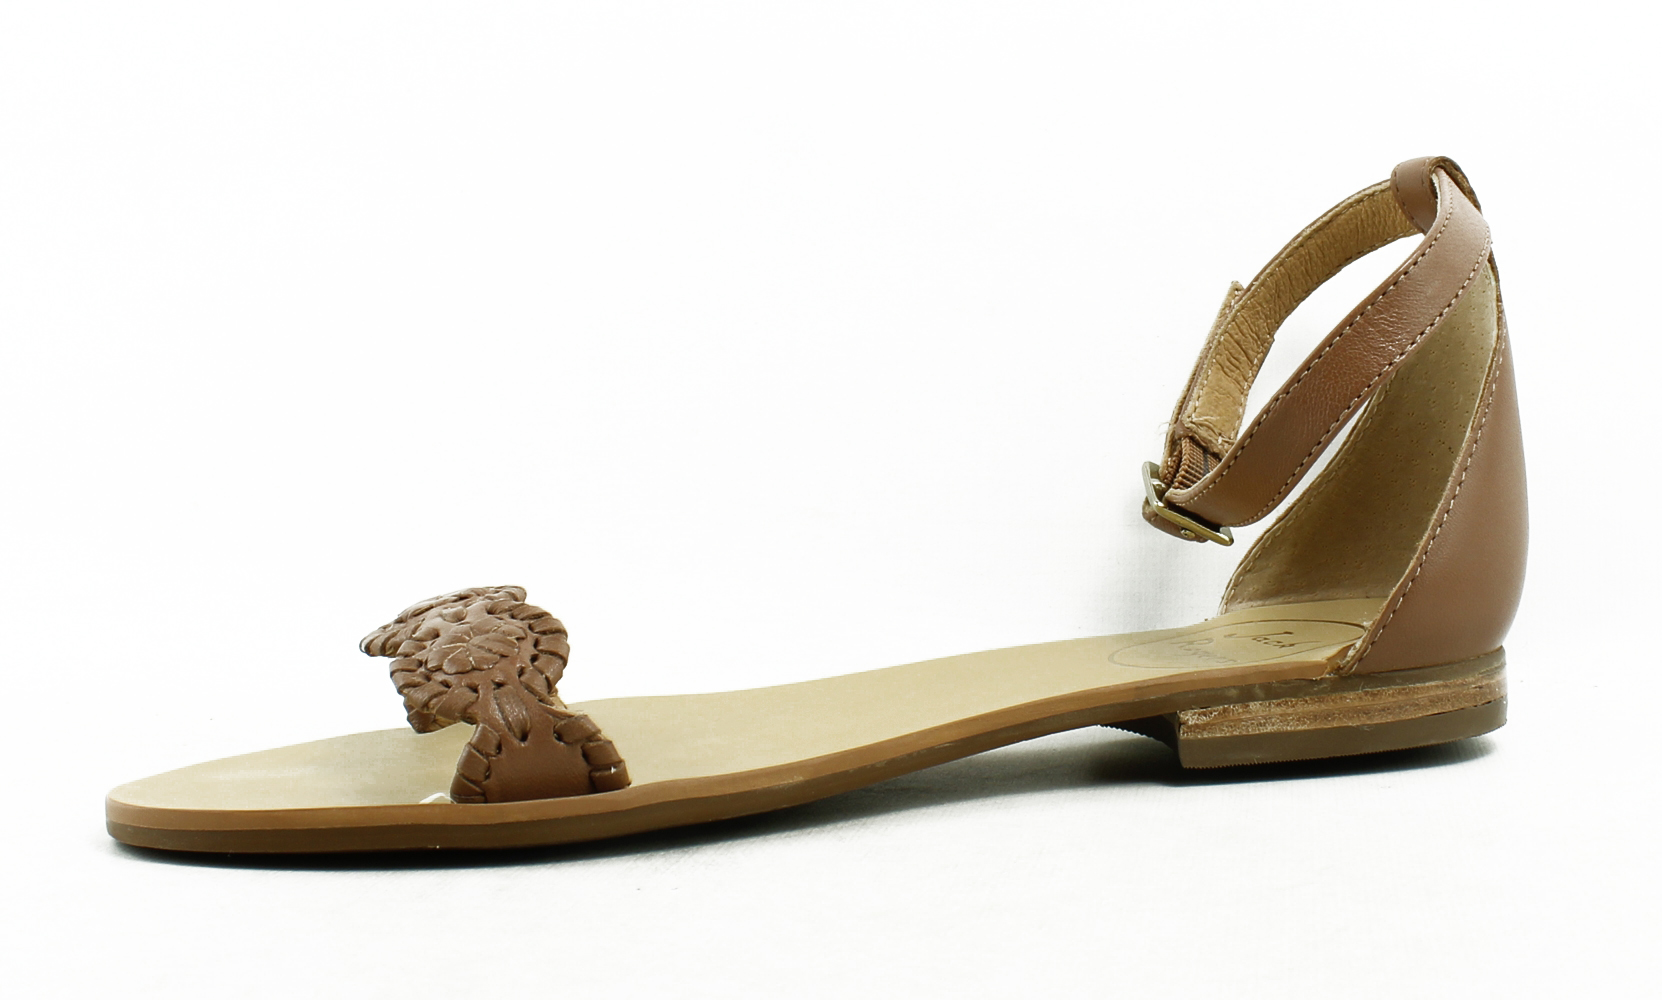 565f5ad00241f New Jack Rogers Womens Daphne Ankle Strap Sandals